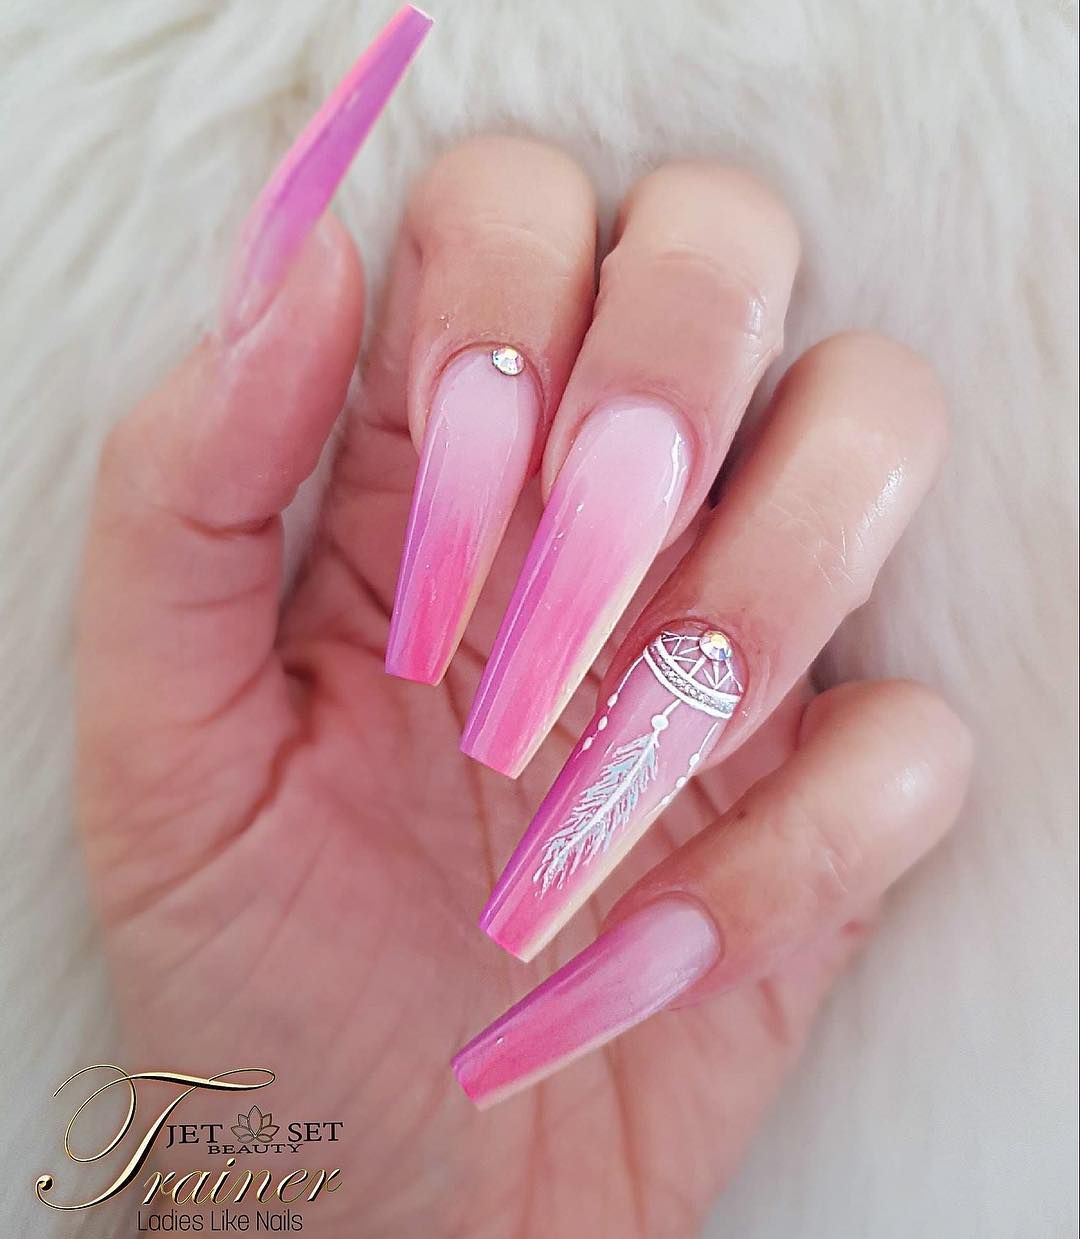 Summer Ombre Jet Set Beauty Nails Ladies Like Nails Livingcoral